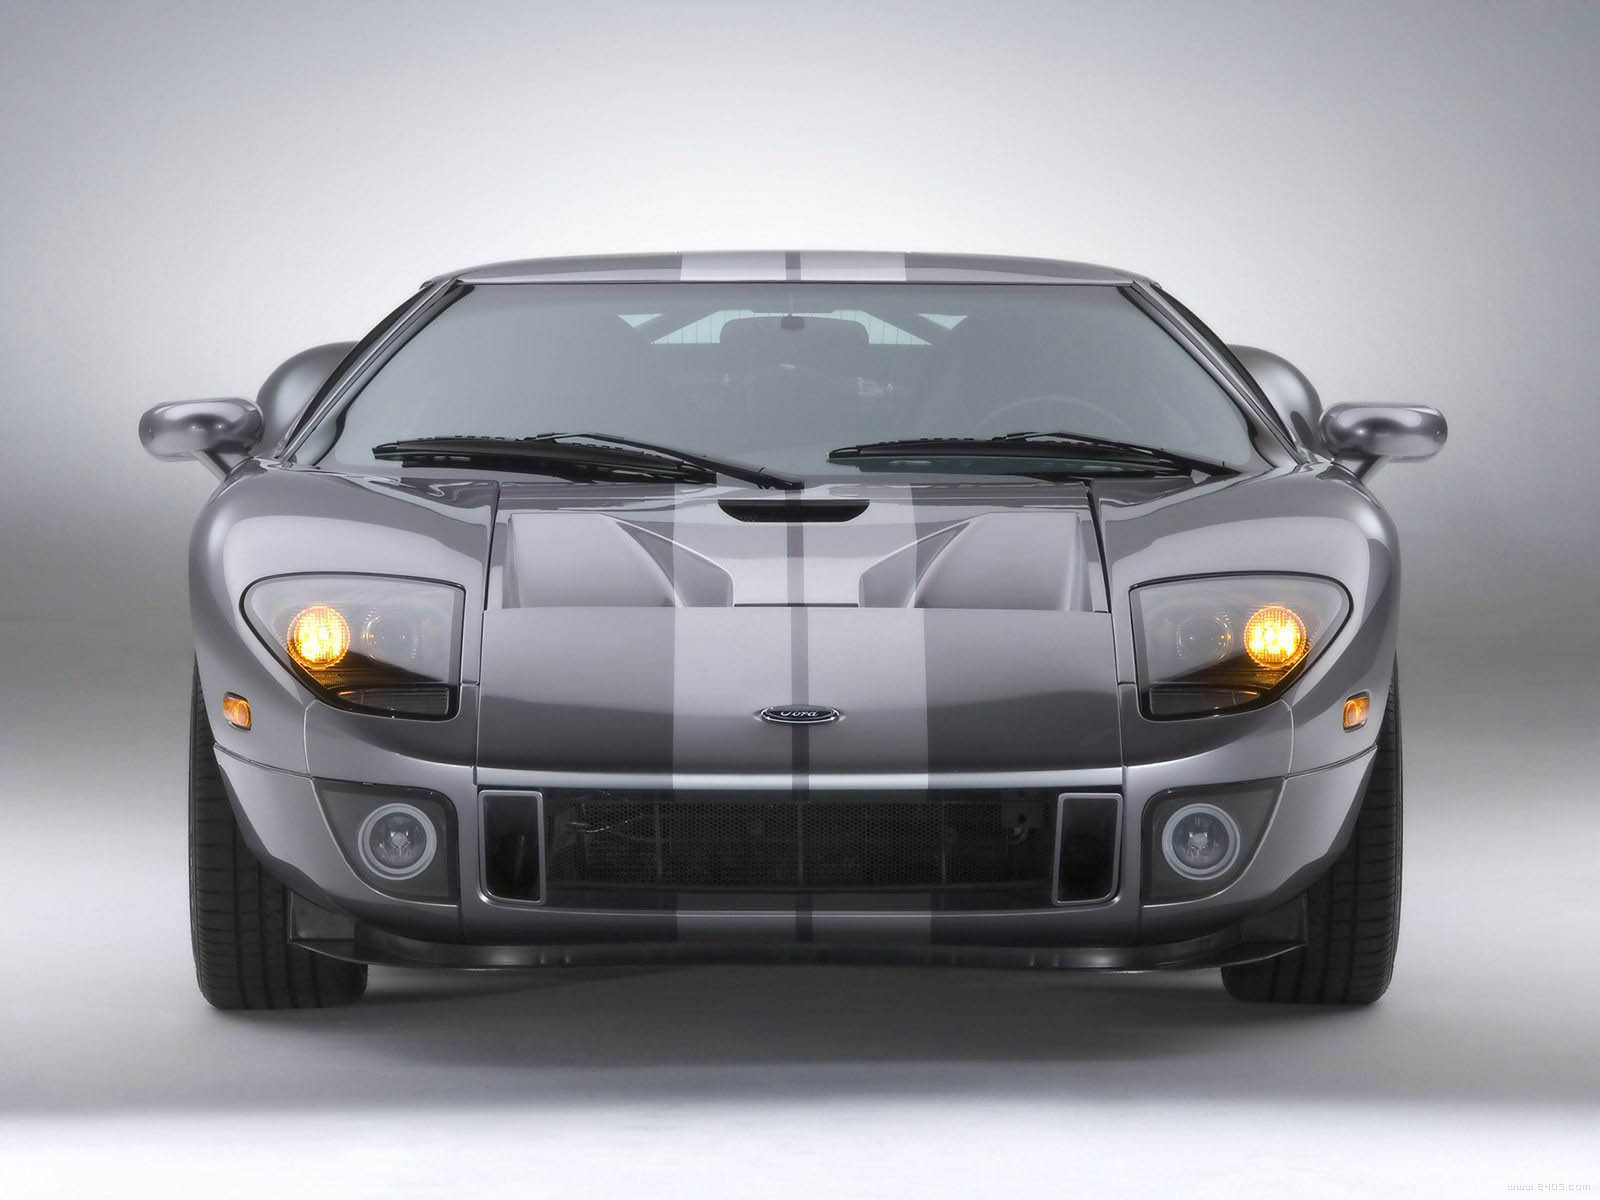 Ford Tungsten Gt Limited Edition